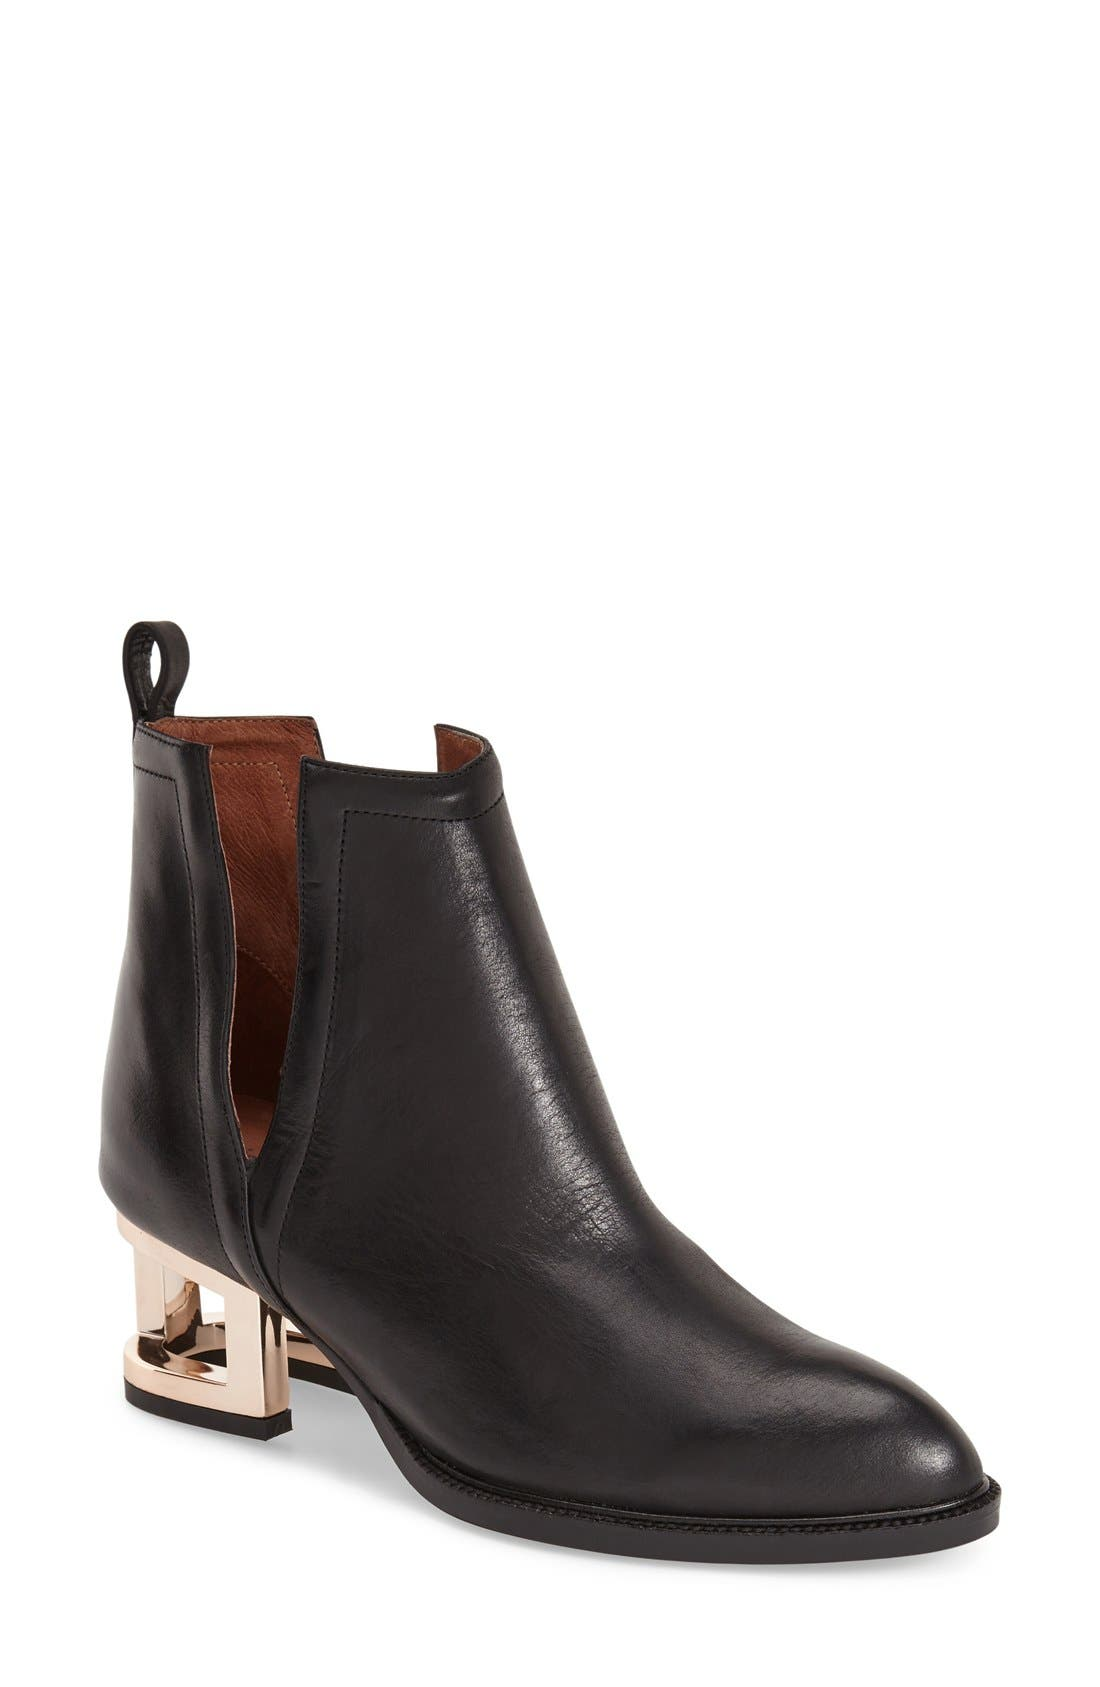 Main Image - Jeffrey Campbell 'Musk' Cage Heel Ankle Boot (Women)